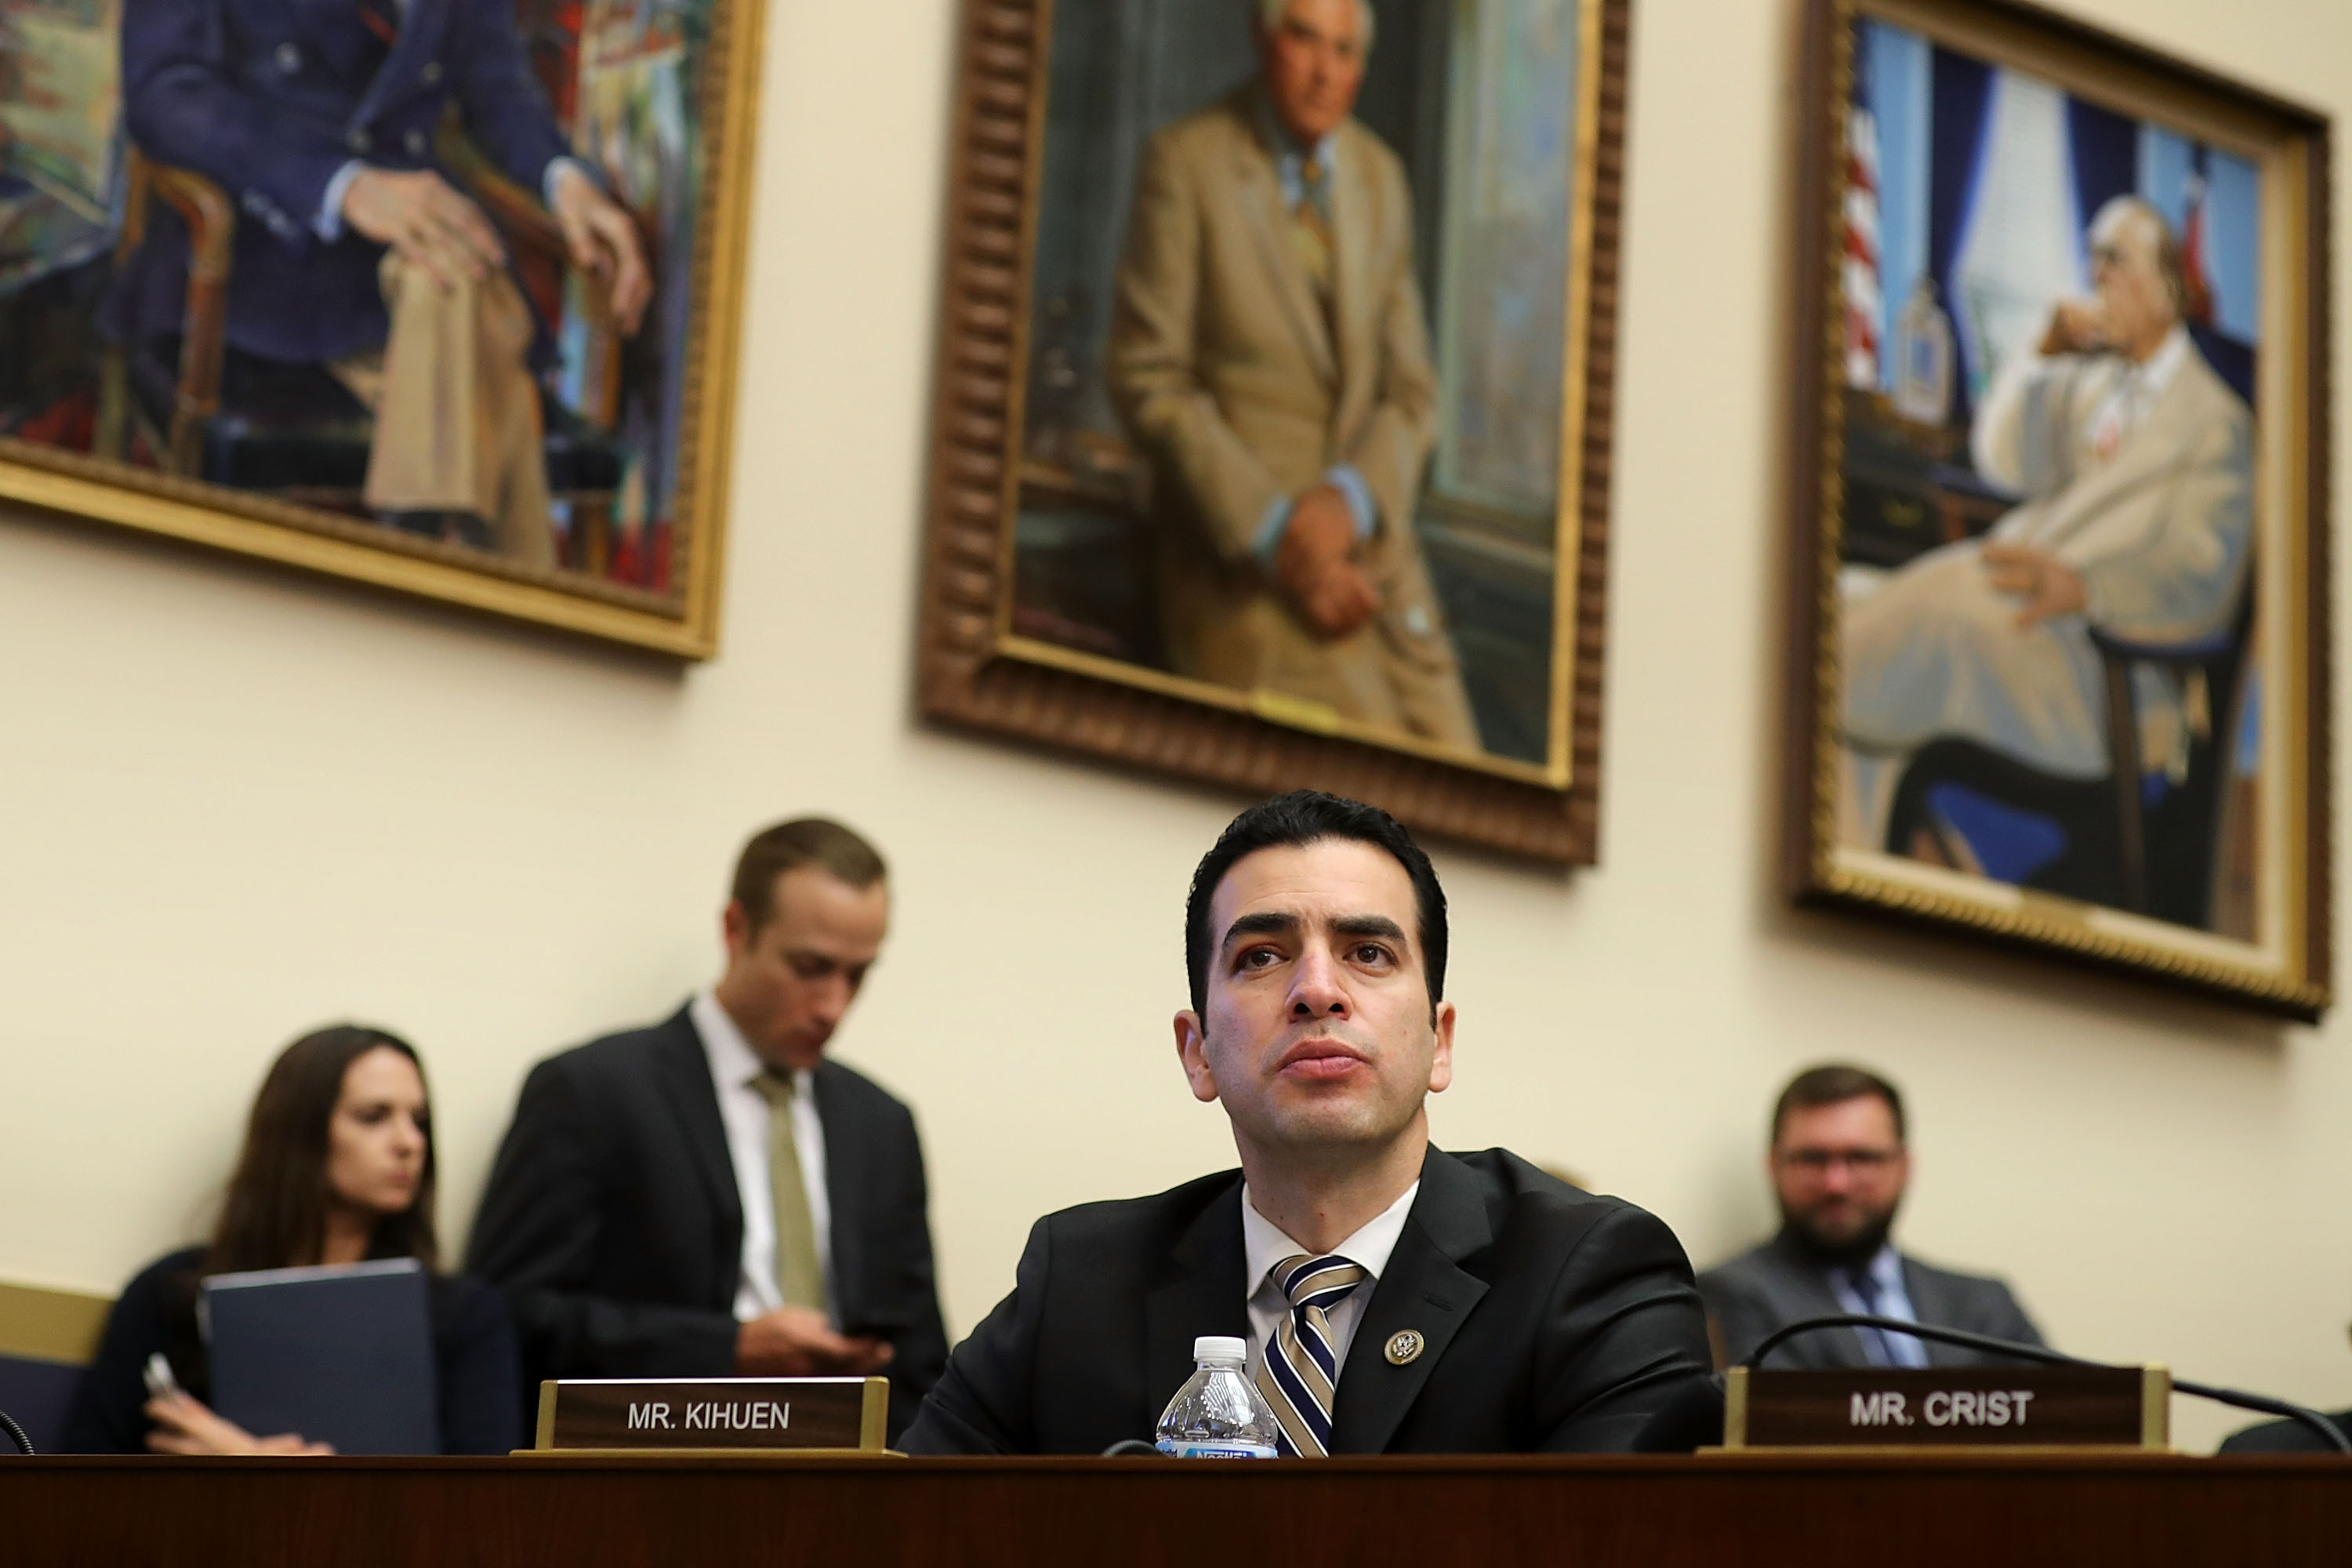 House Financial Services Committee member Rep. Ruben Kihuen (C) listens to testimony from Treasury Secretary Steven Mnuchin in the Rayburn House Office Building on Capitol Hill February 6, 2018 in Washington, DC. Chip Somodevilla/Getty Images